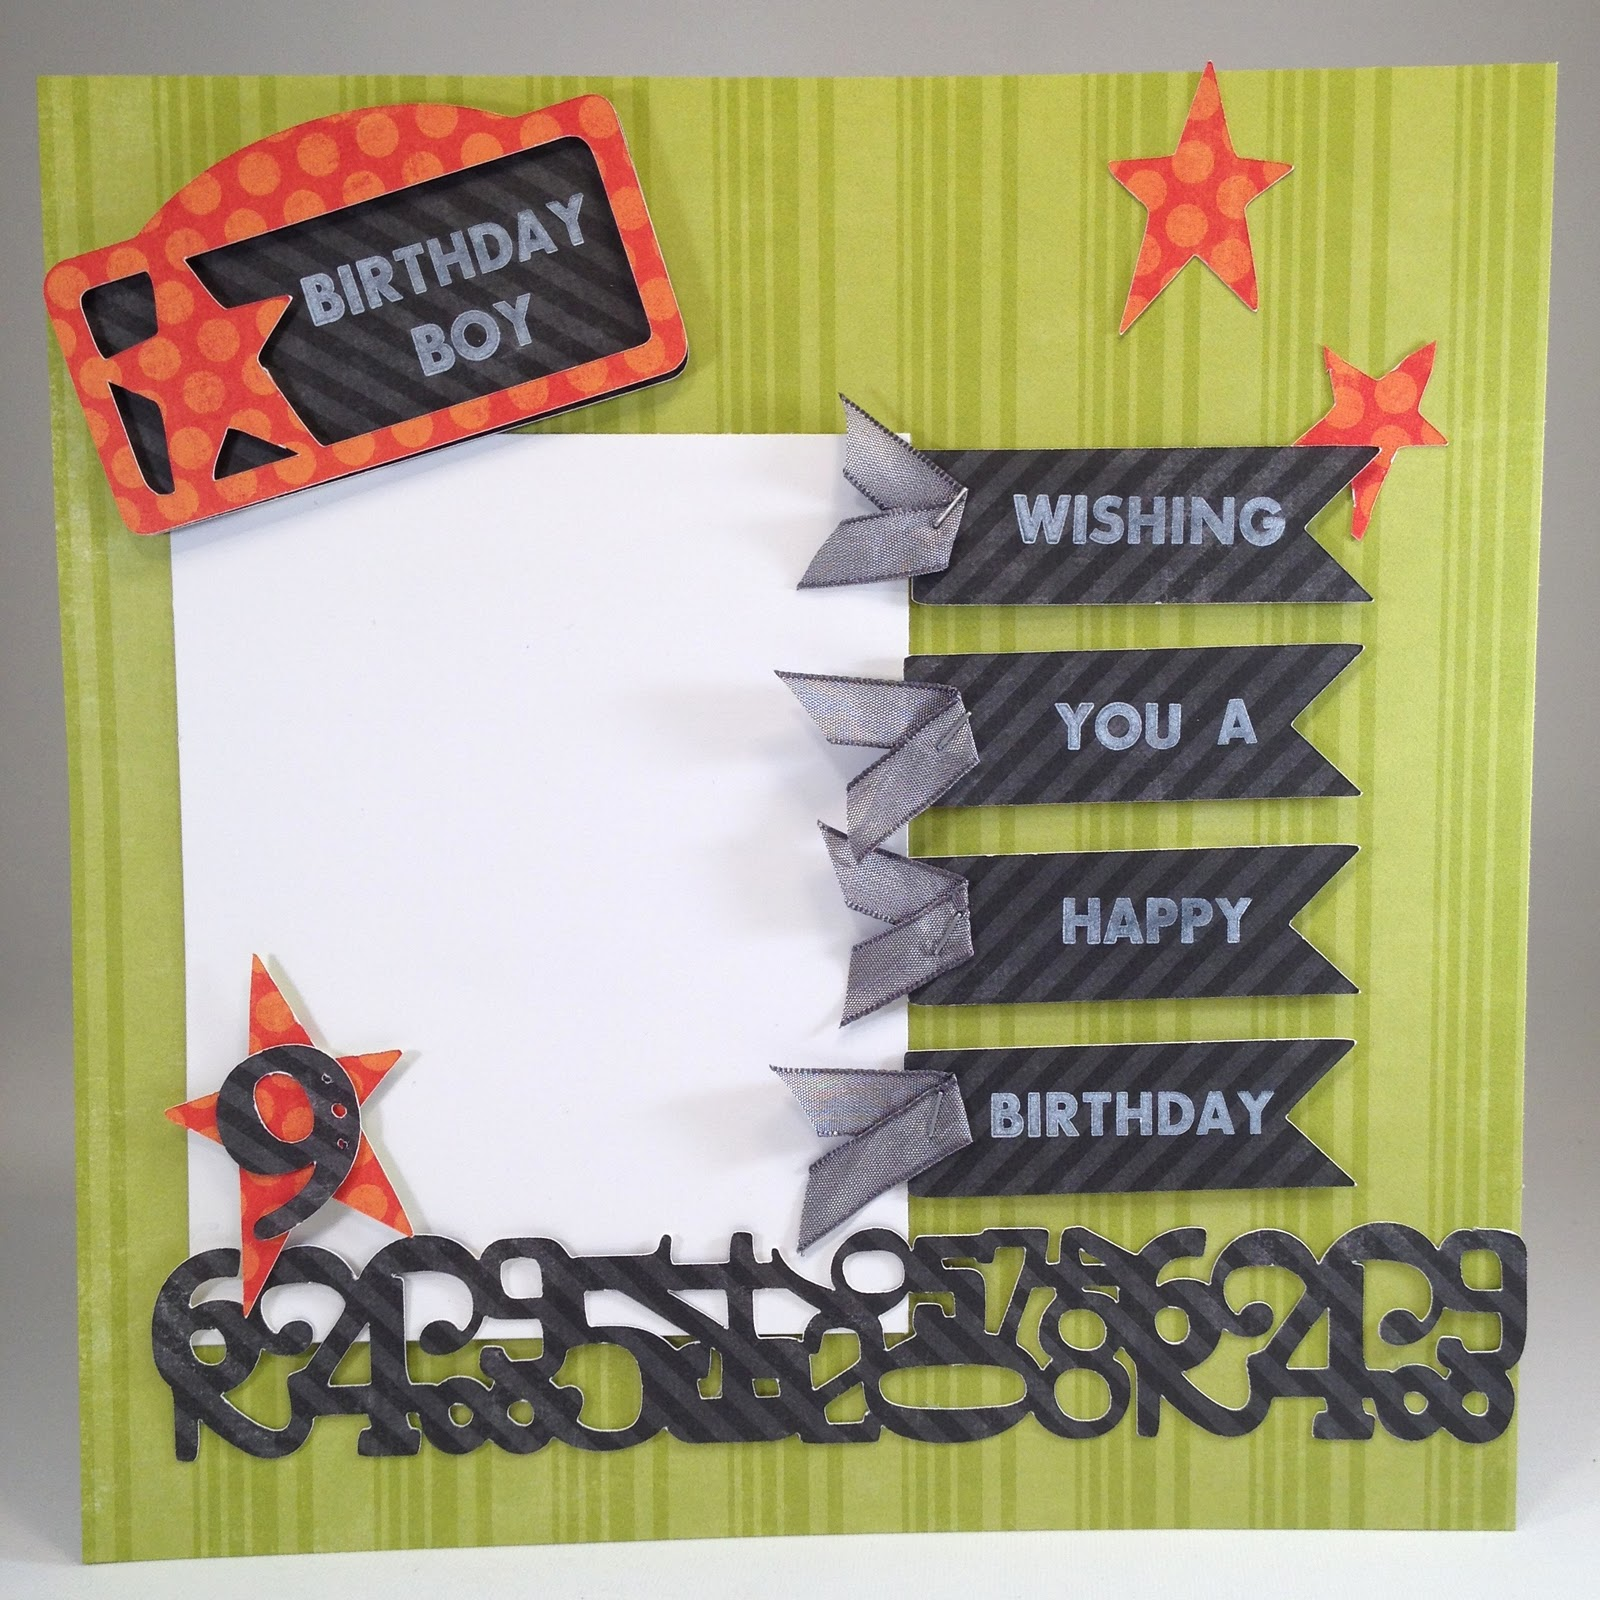 How to scrapbook 8x8 layouts - Birthday Boy Scrapbook Page My Pink Stamper Pinkalicious Blog Hop November